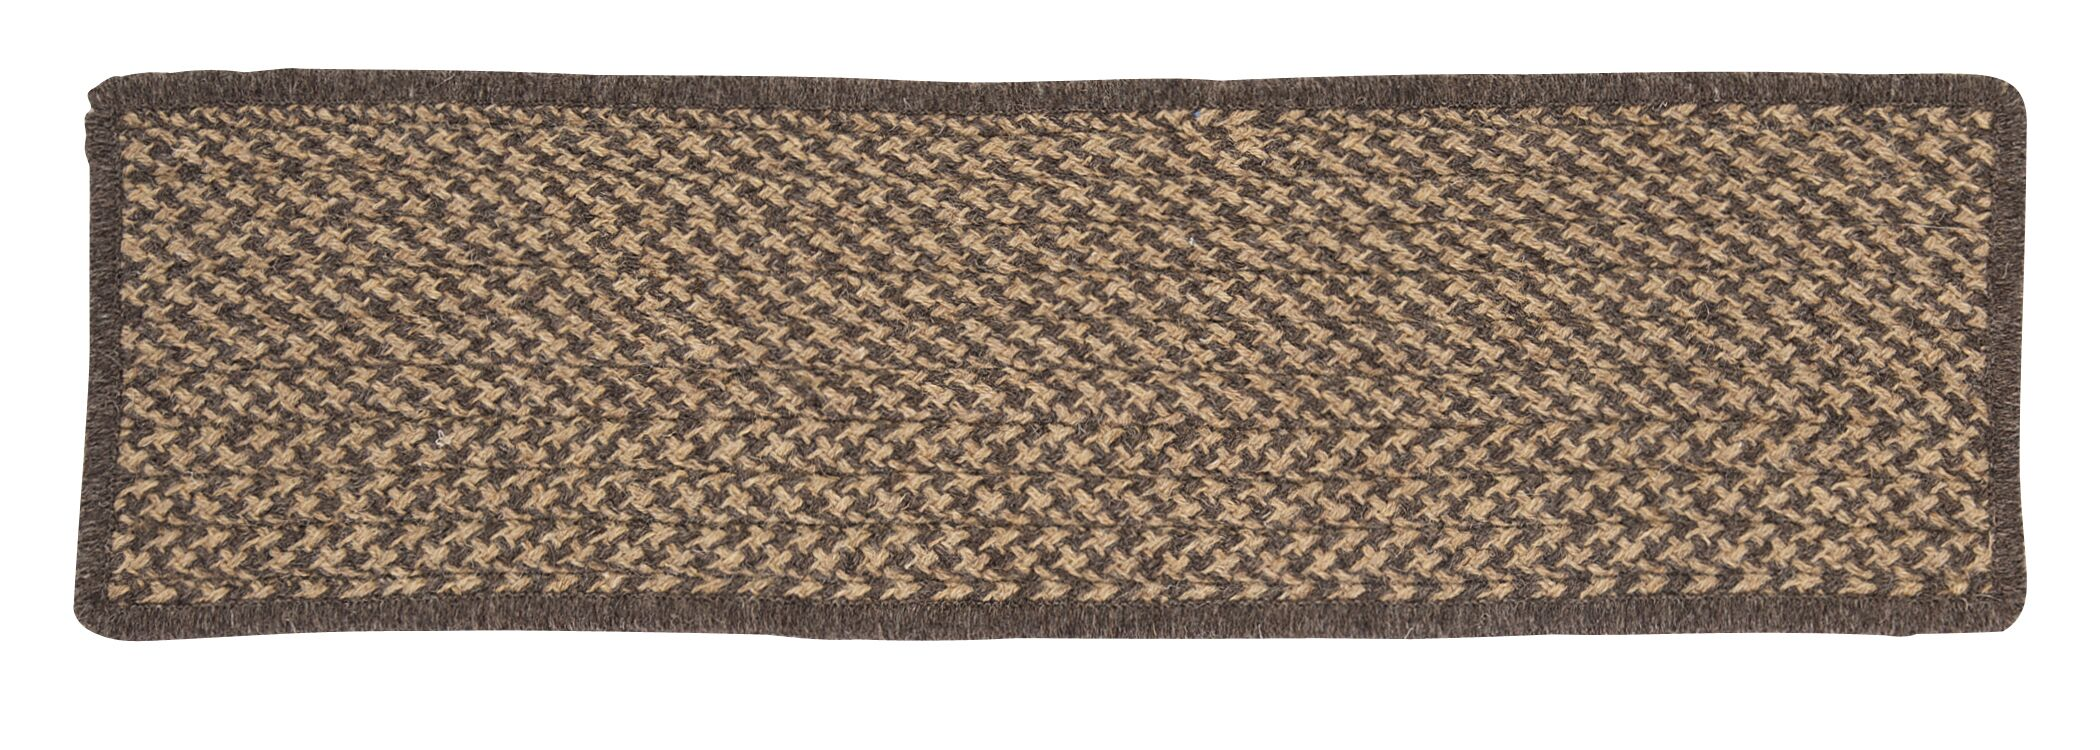 Natural Wool Houndstooth Caramel Stair Tread Quantity: Set of 13 Stair Treads